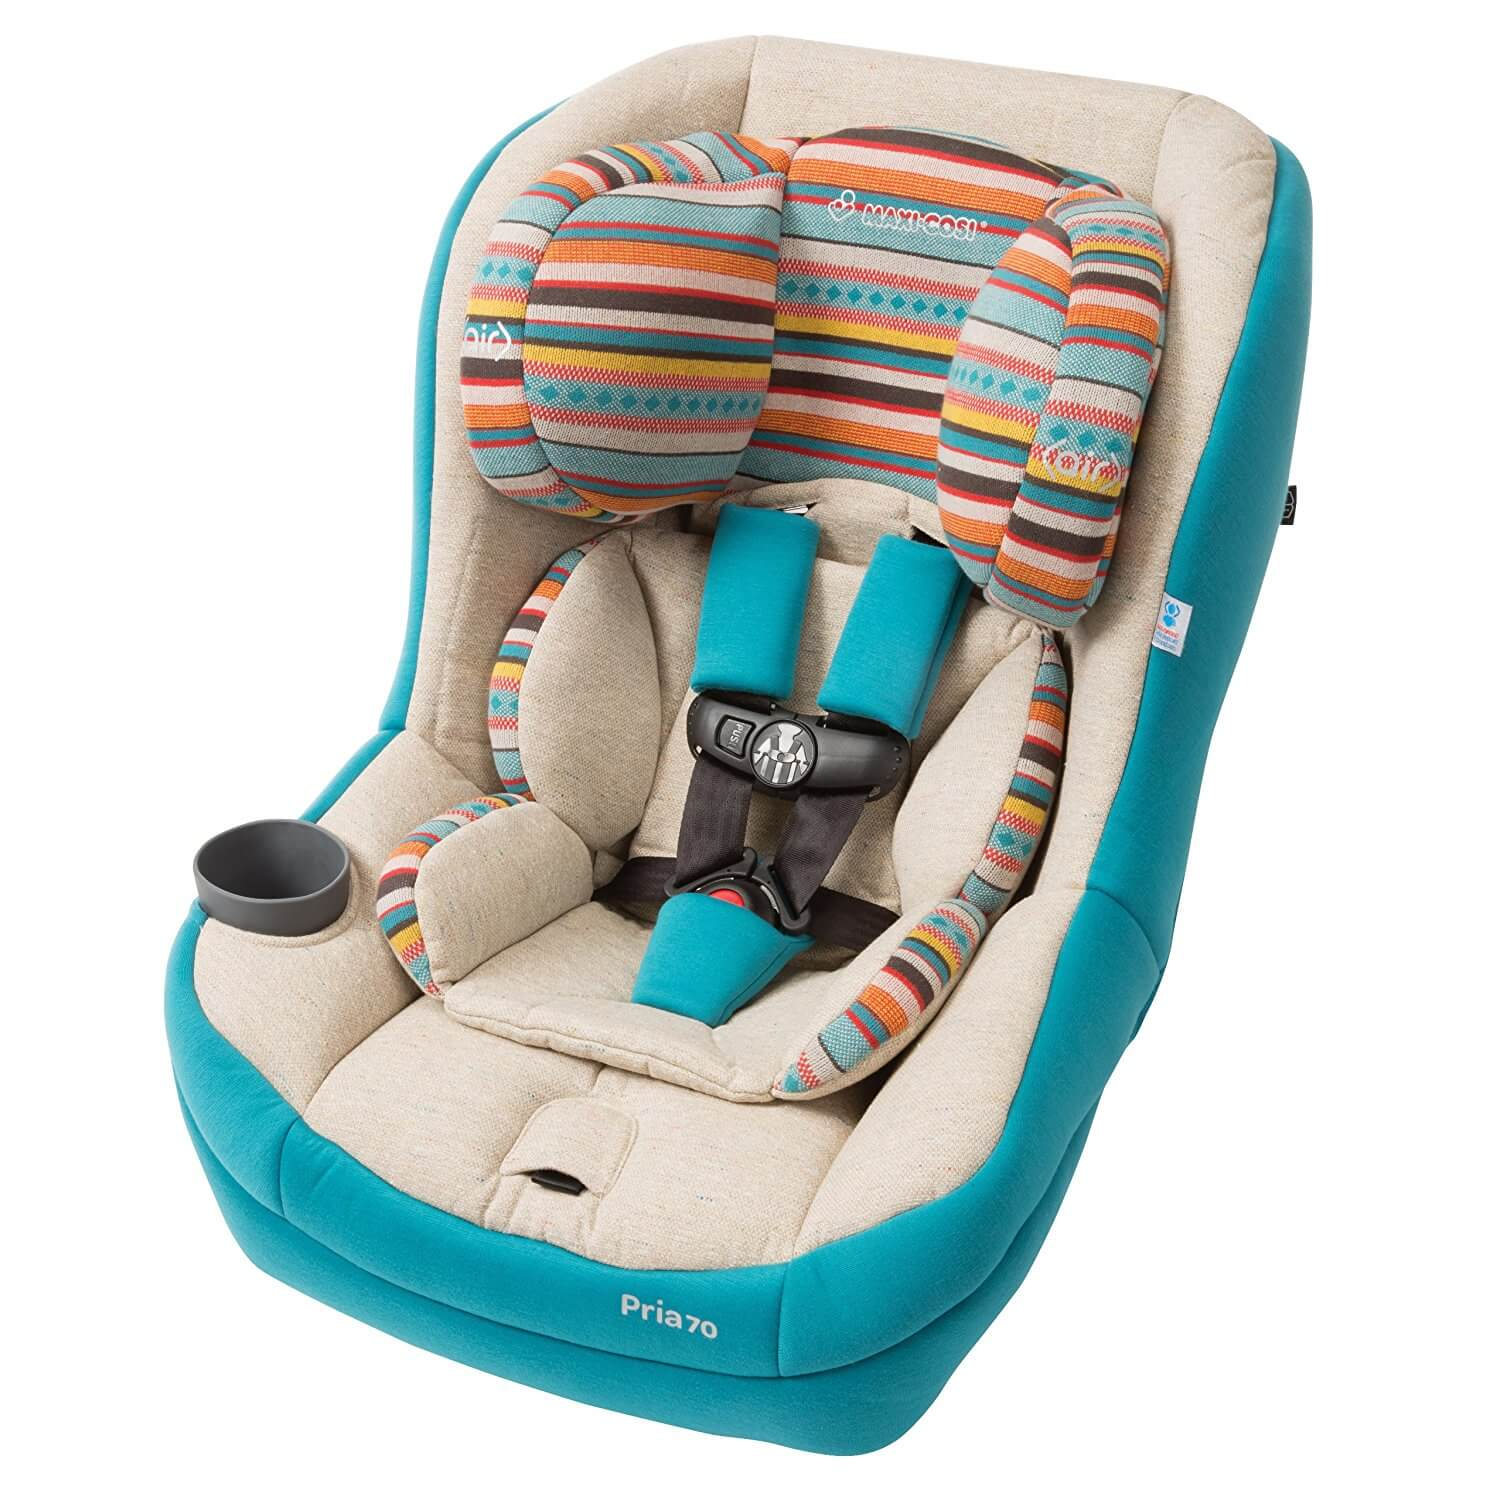 Maxi cosi pria 70 the car seat that fits on the review for Maxi cosi housse